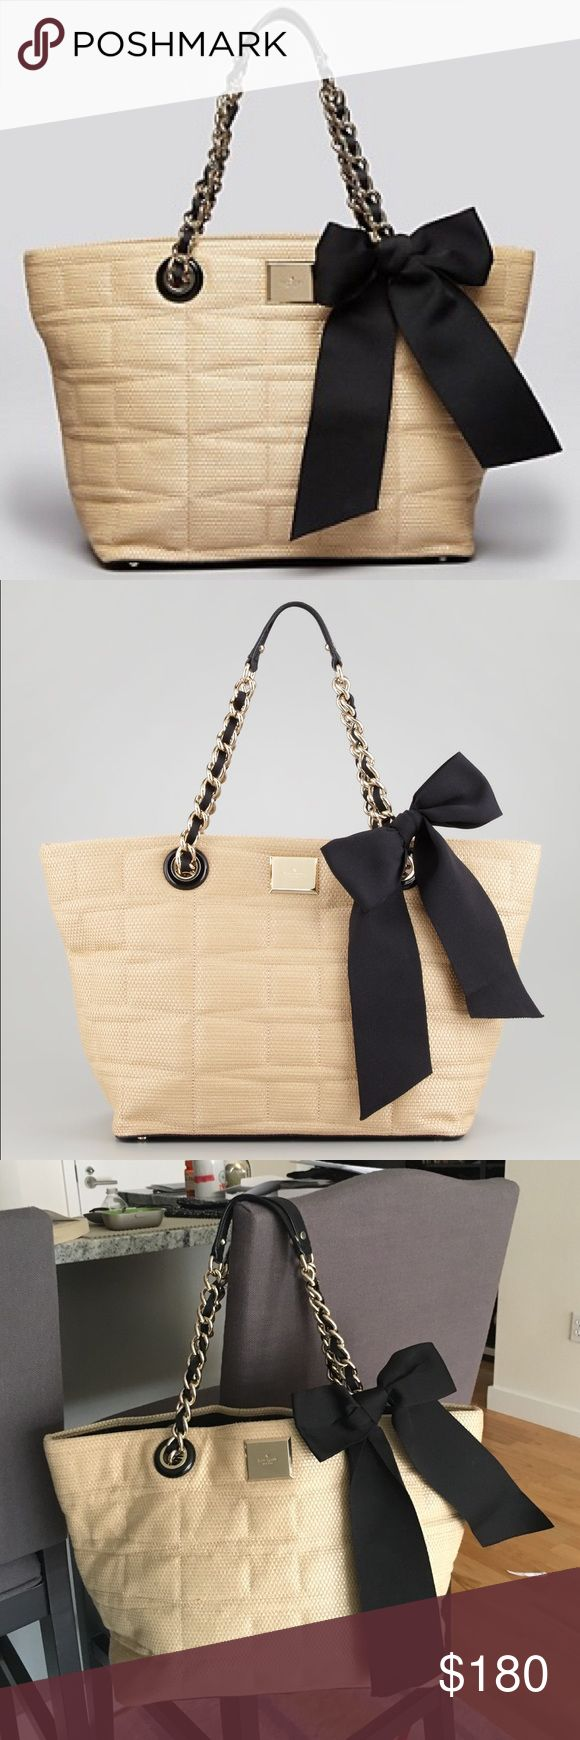 """Women's Natural Small Straw Coal Tote Bag Used in perfect condition. Clean outside and the inside has some ink marks.                      Quilted woven straw with contrast grosgrain accents. Golden hardware. Woven chain shoulder straps pull through grommets; 8"""" drop. Large bow detail on left side. Signature logo plate to top center. Snap top for easy, on-the-go access. Inside; logo jacquard lining; one zip and two open pockets. 11""""H x 18""""W x 6""""D; bag weight: 2lbs. Imported. kate spade Bags…"""